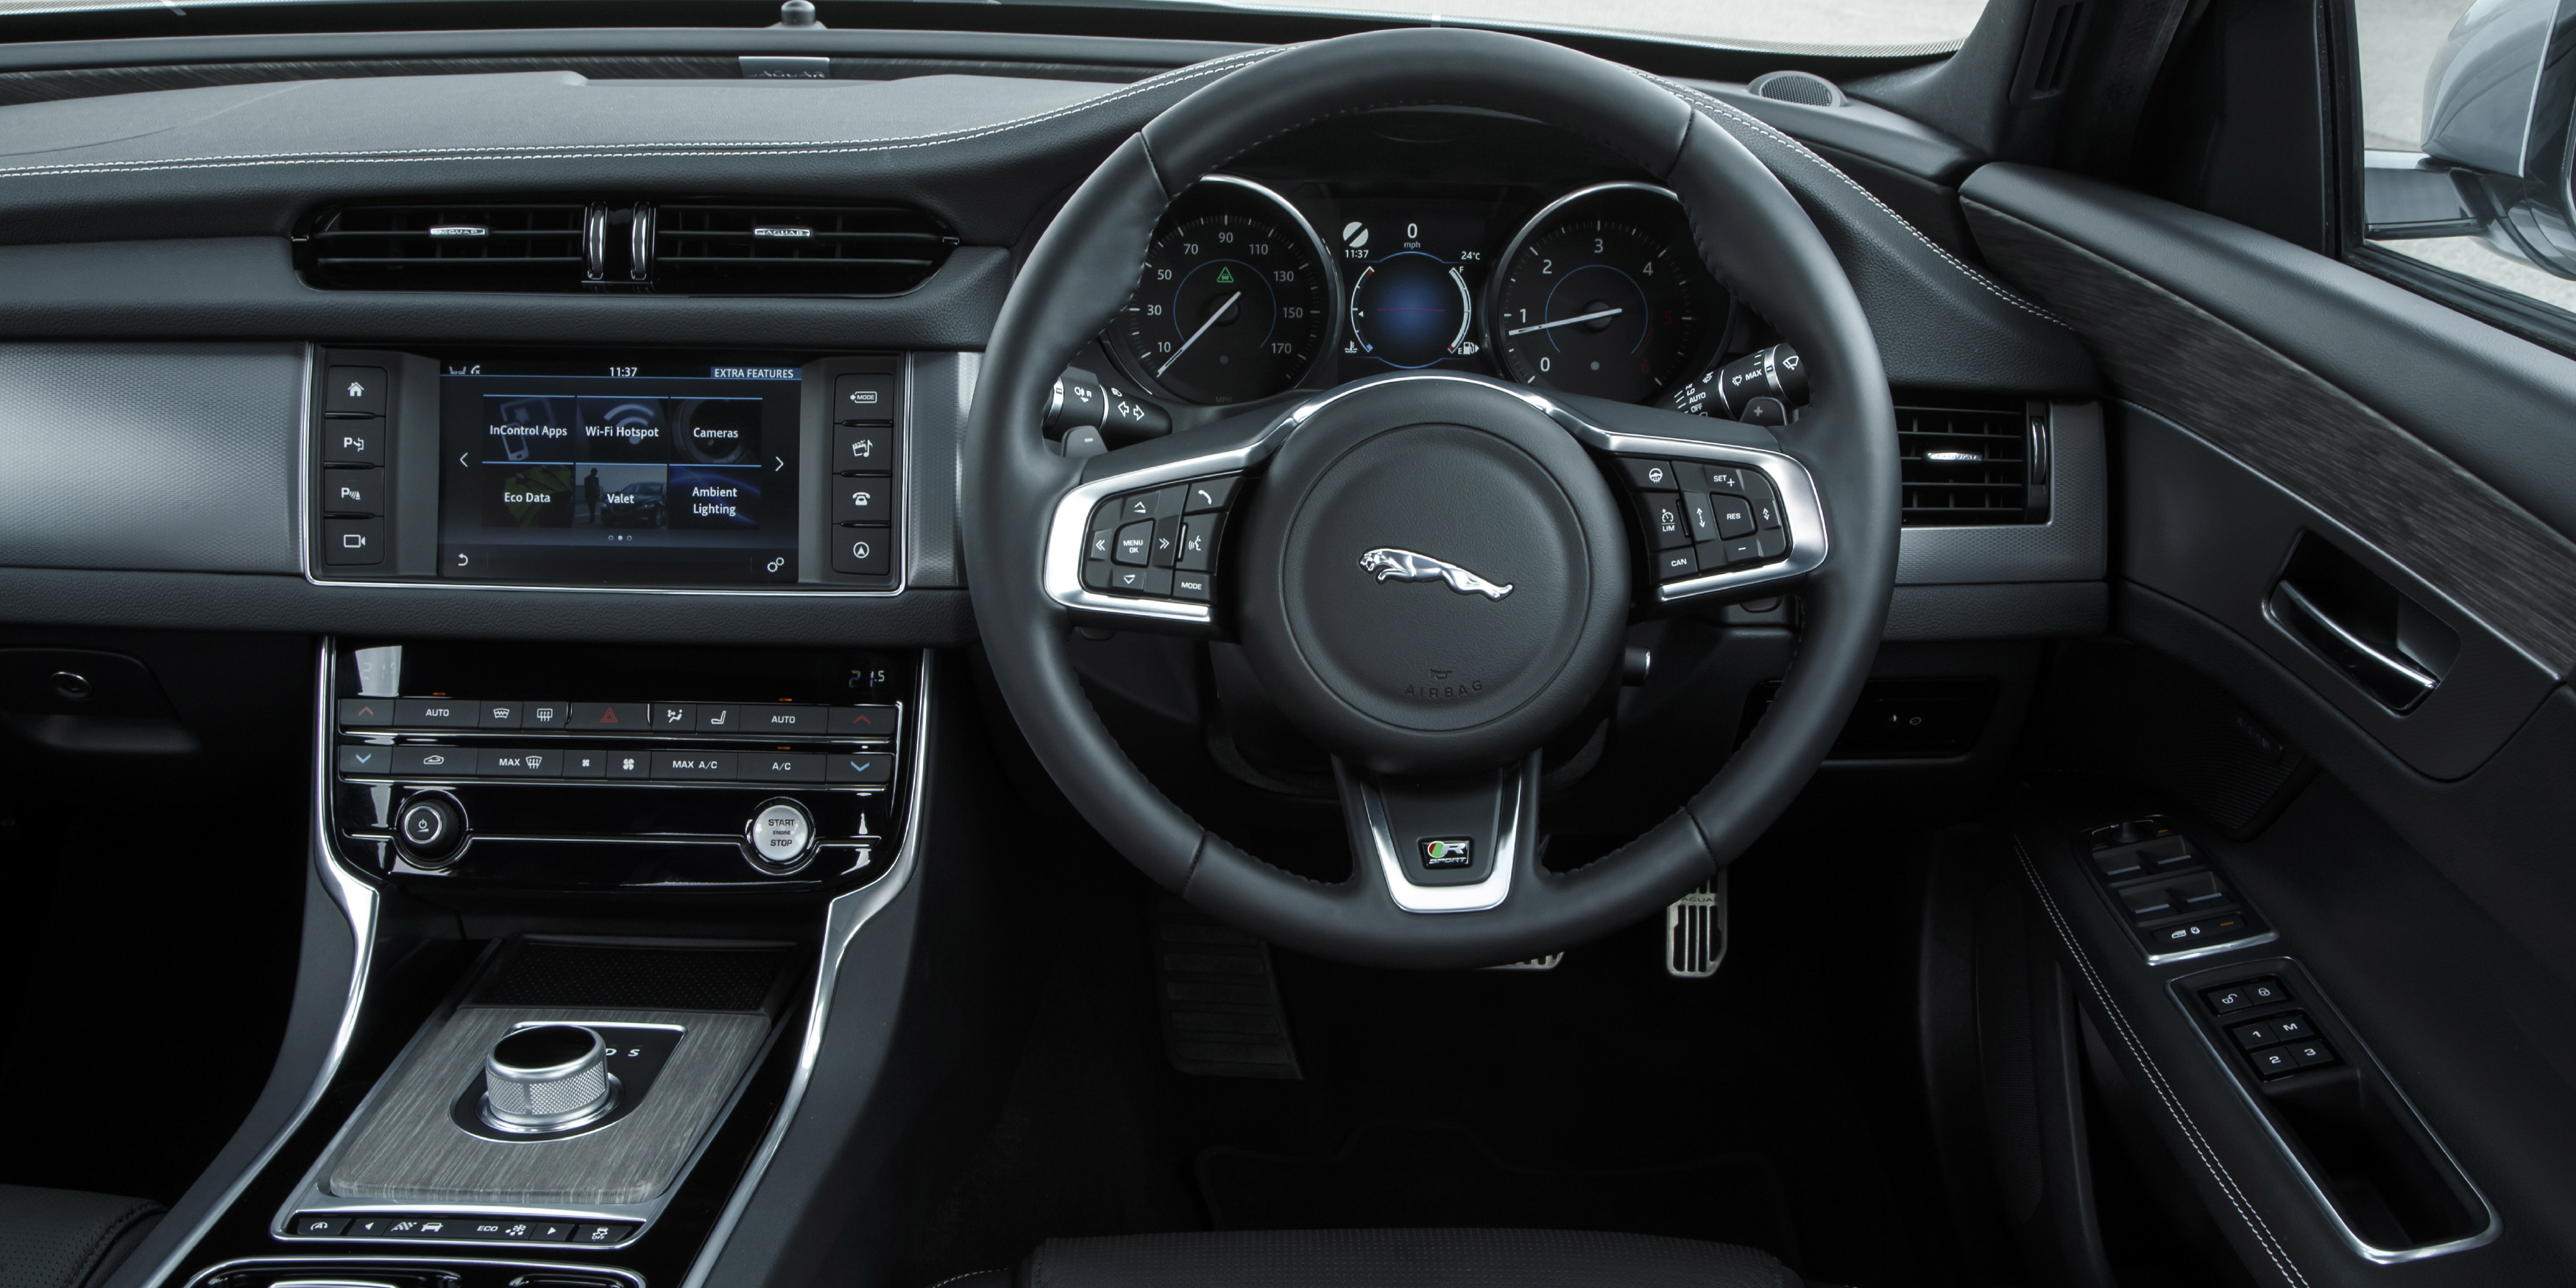 Subaru Latest Models >> Jaguar XF Interior & Infotainment | carwow